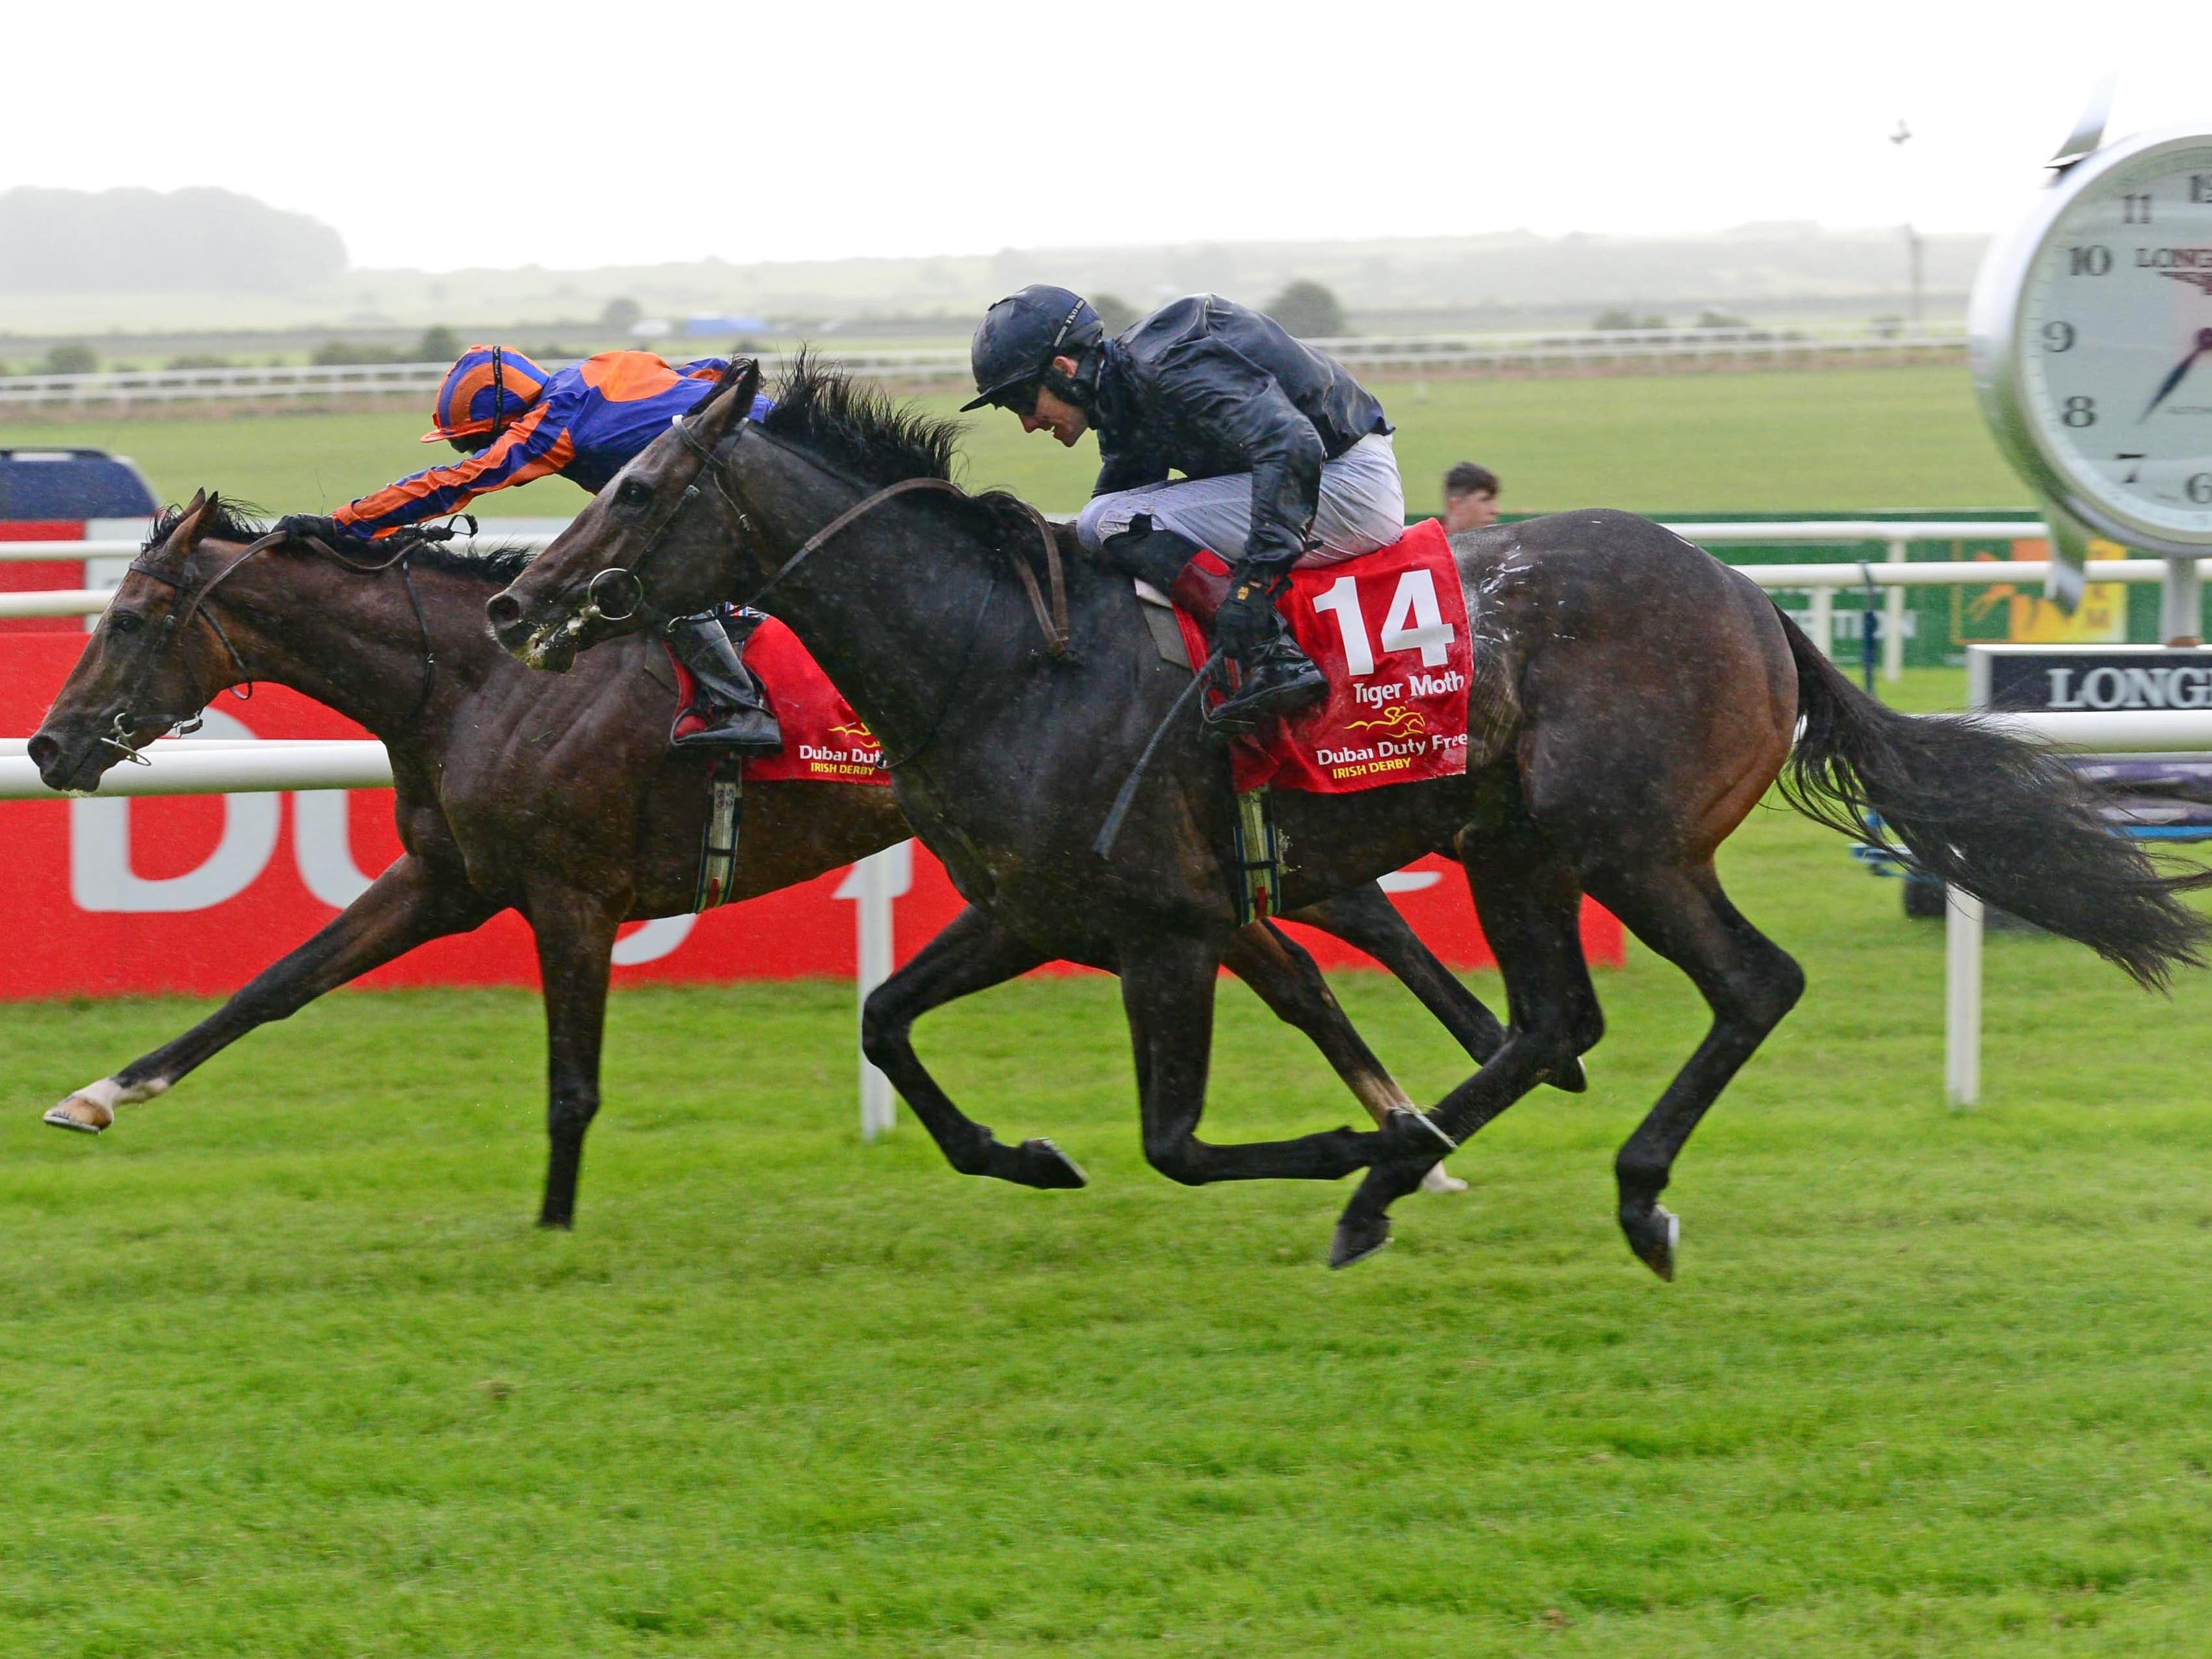 Santiago edged out Tiger Moth at the Curragh (PA)